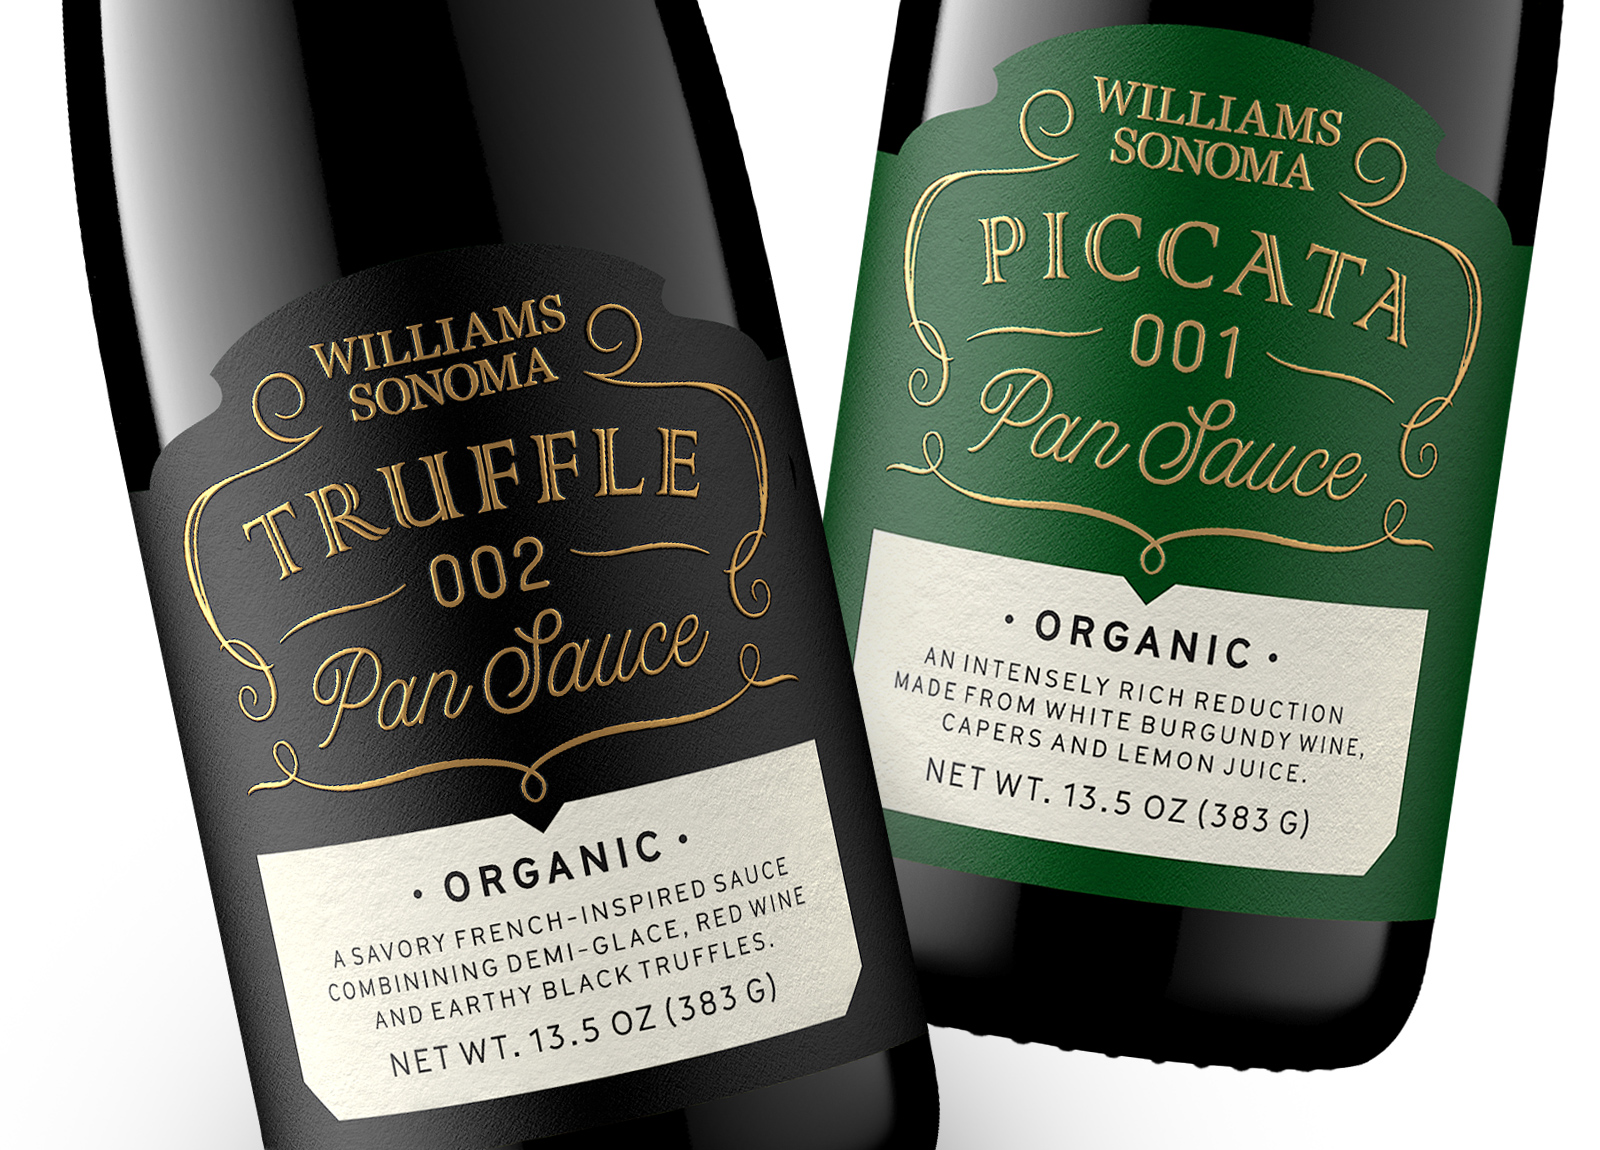 Pavement Redesigns French-inspired Sauces for Williams Sonoma